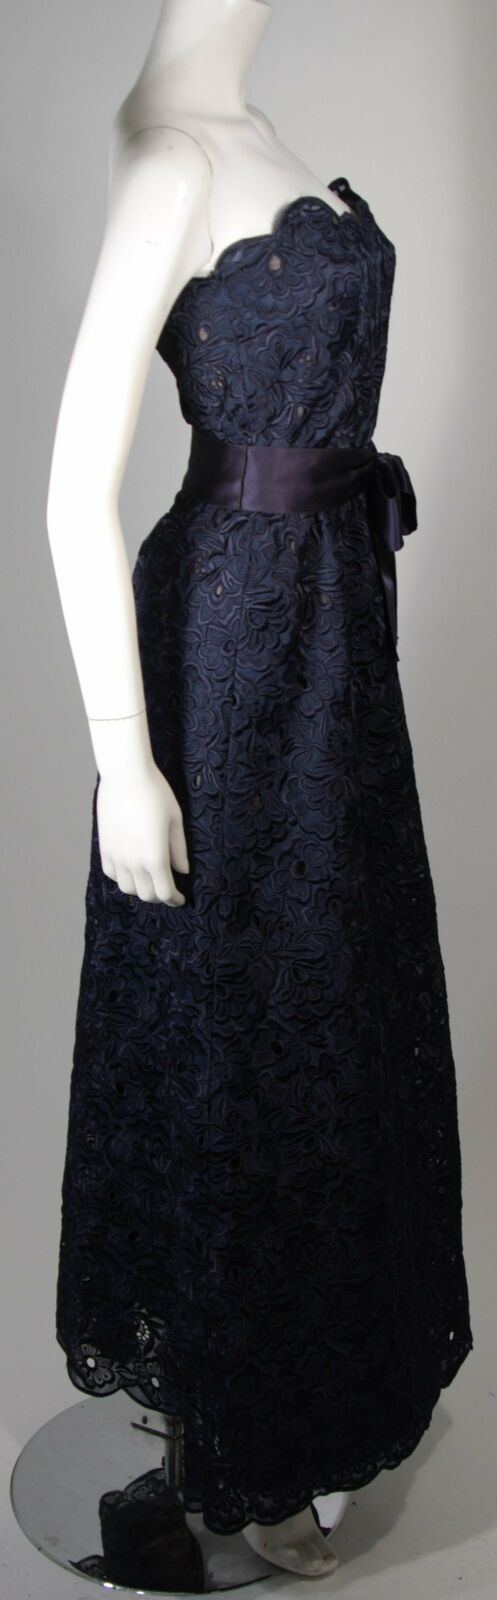 ARNOLD SCAASI Navy Floral Lace Gown Satin Belt Si… - image 4